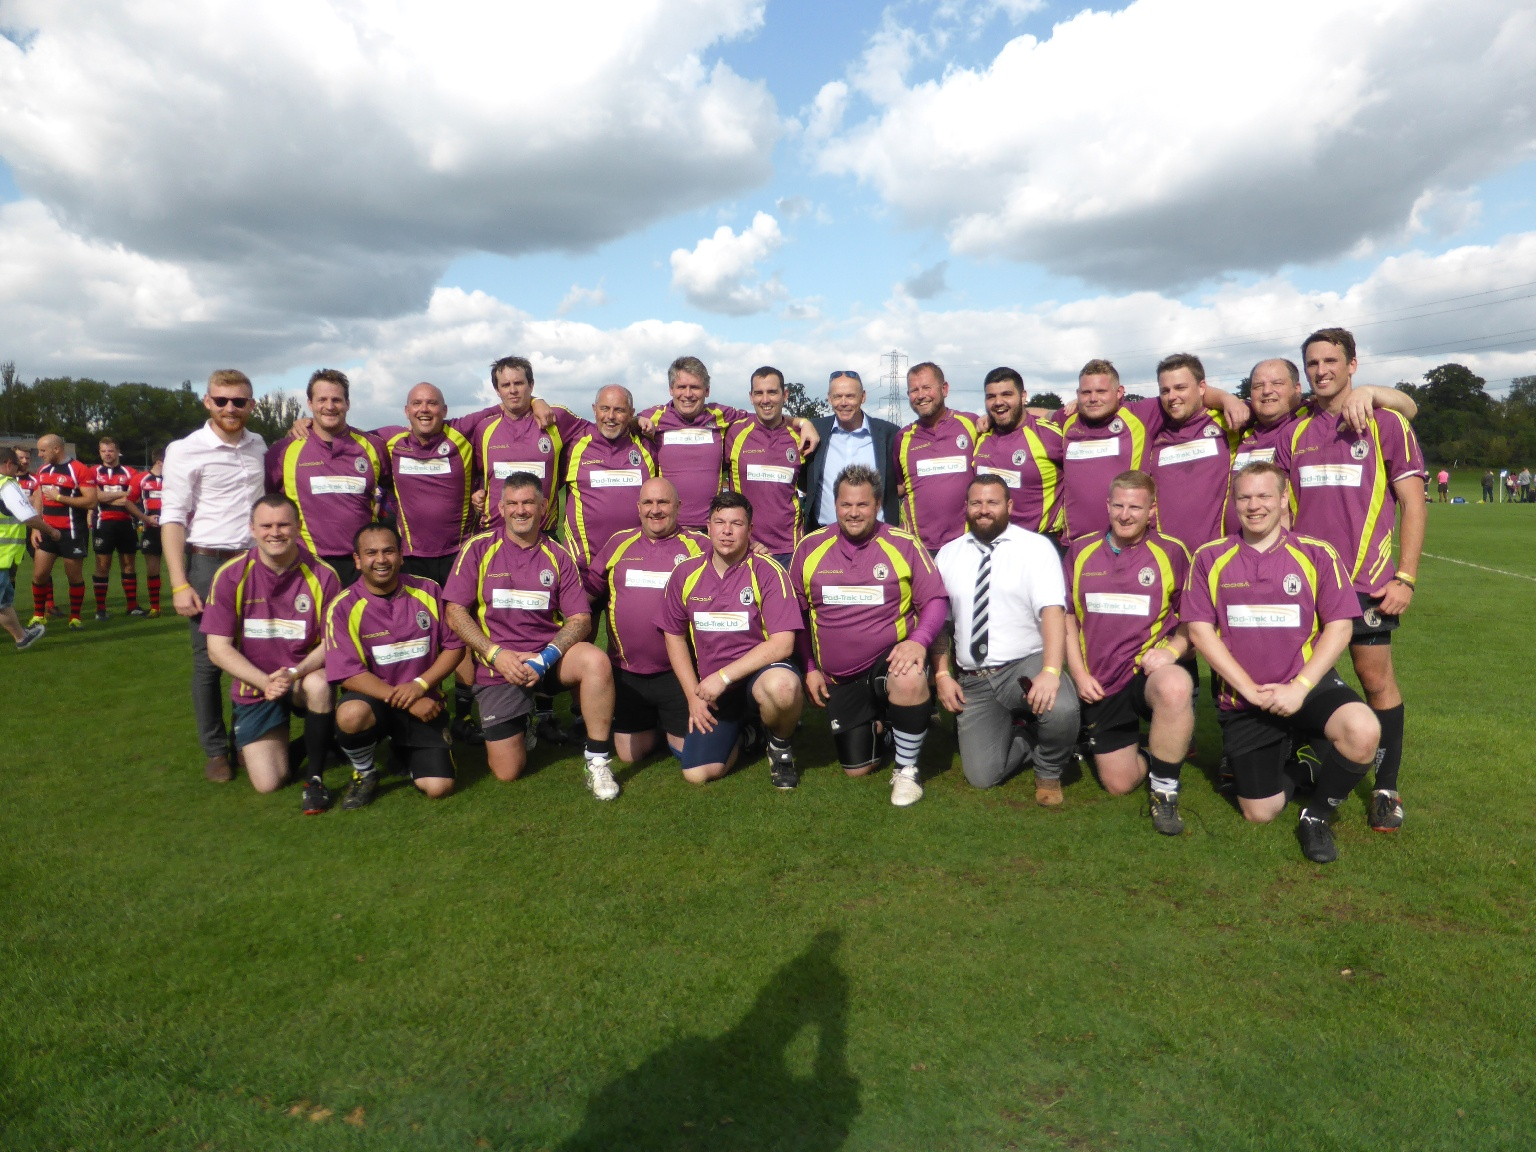 Hertfordshire - News - Blackhorse RFC win World Cup!